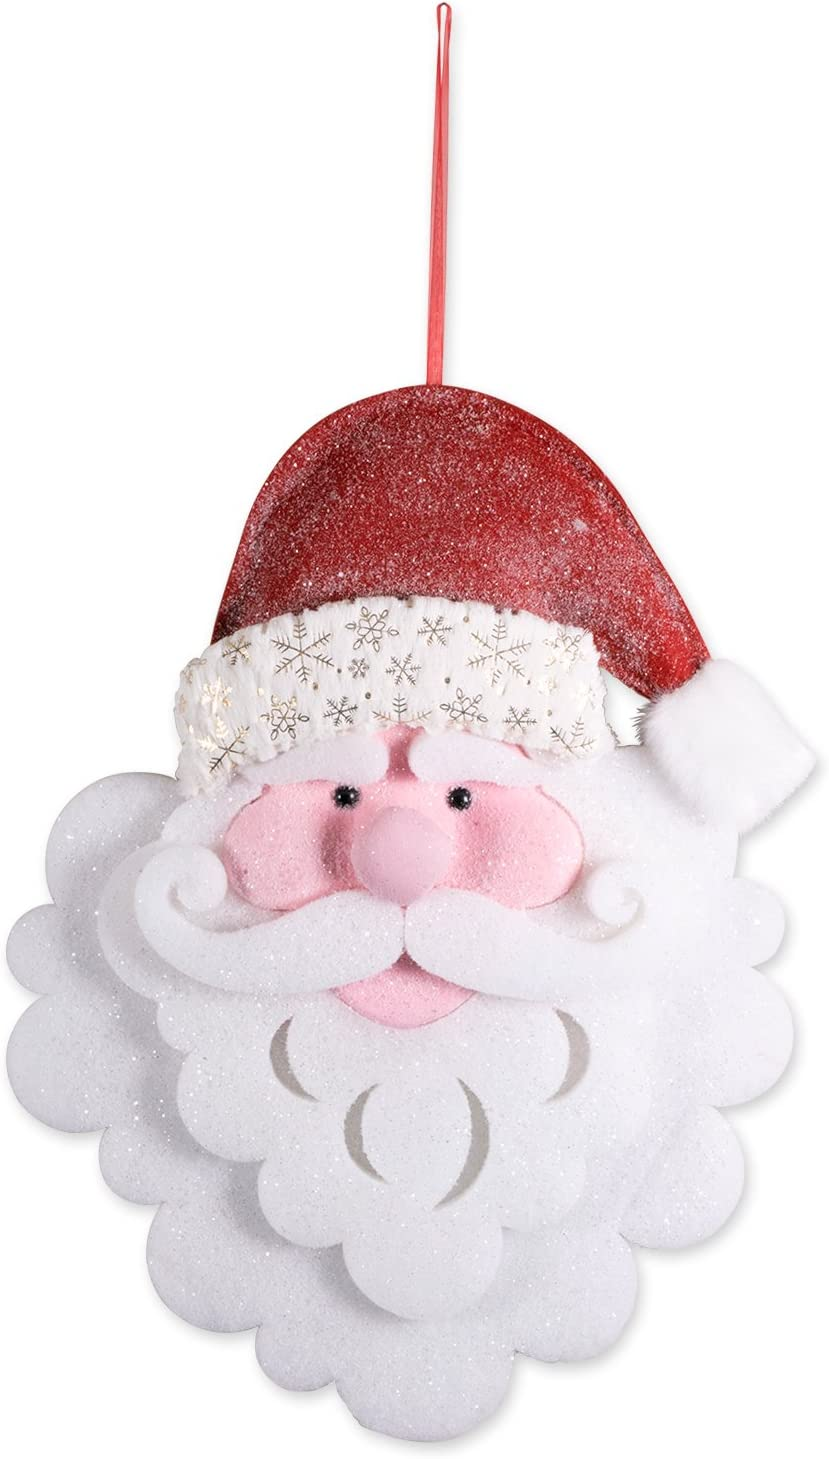 """DII Large Hanging Santa with Red Hat, Glittering From Hat to Beard for Holiday Door & Wall Decoration, Enhance Your Décor for Home, School, Office, or Party (17L x 27.5""""H)"""